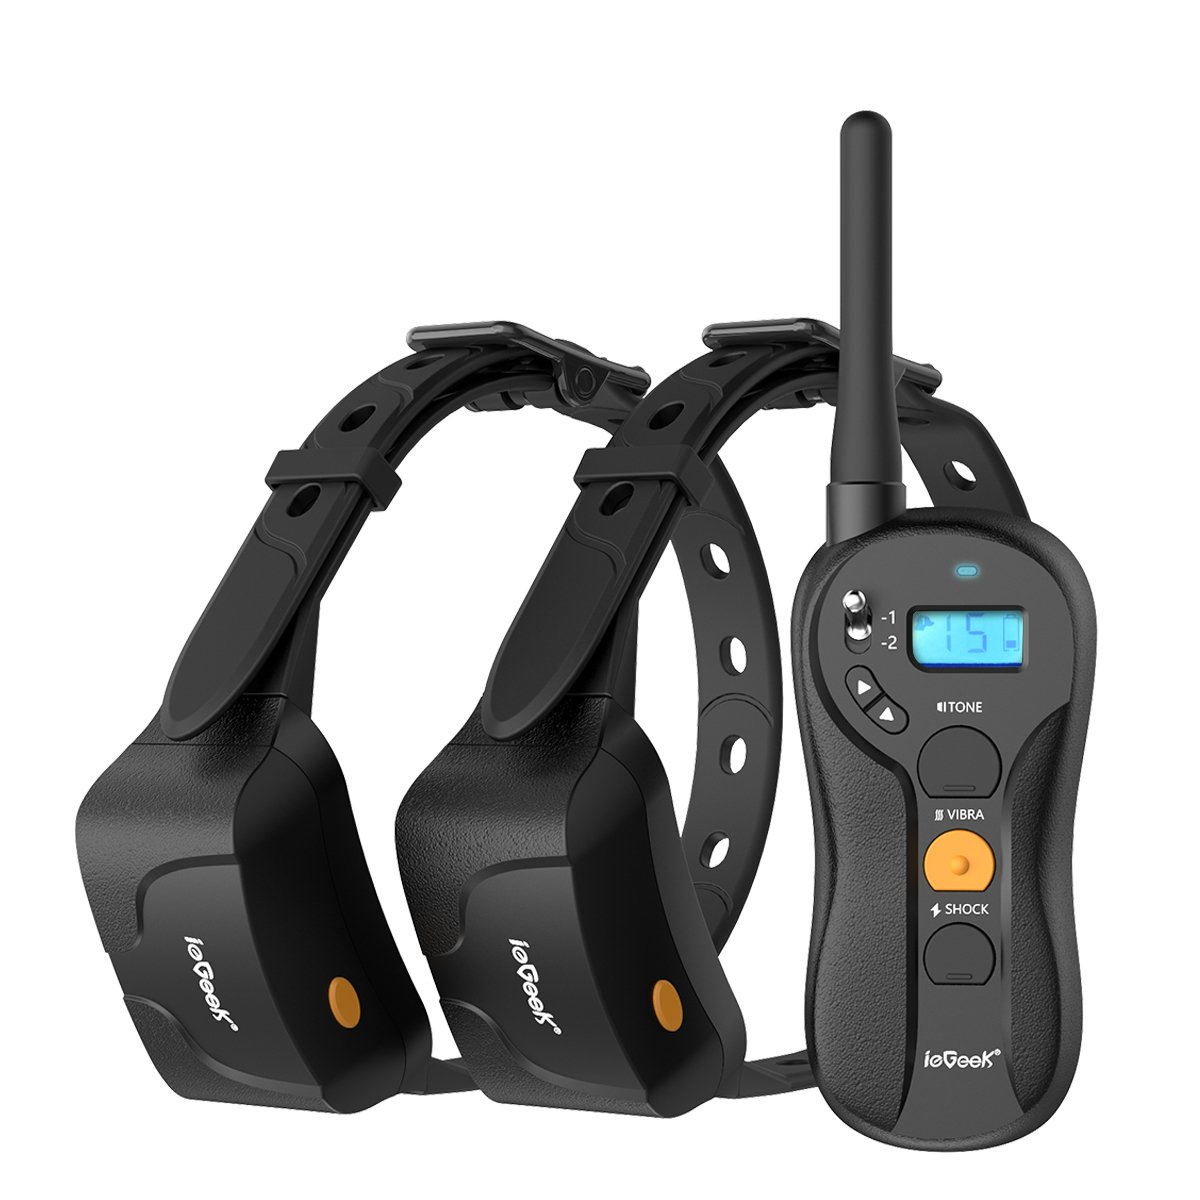 Top 10 Best Remote Dog Training Collar Guide Amp Reviews 2019